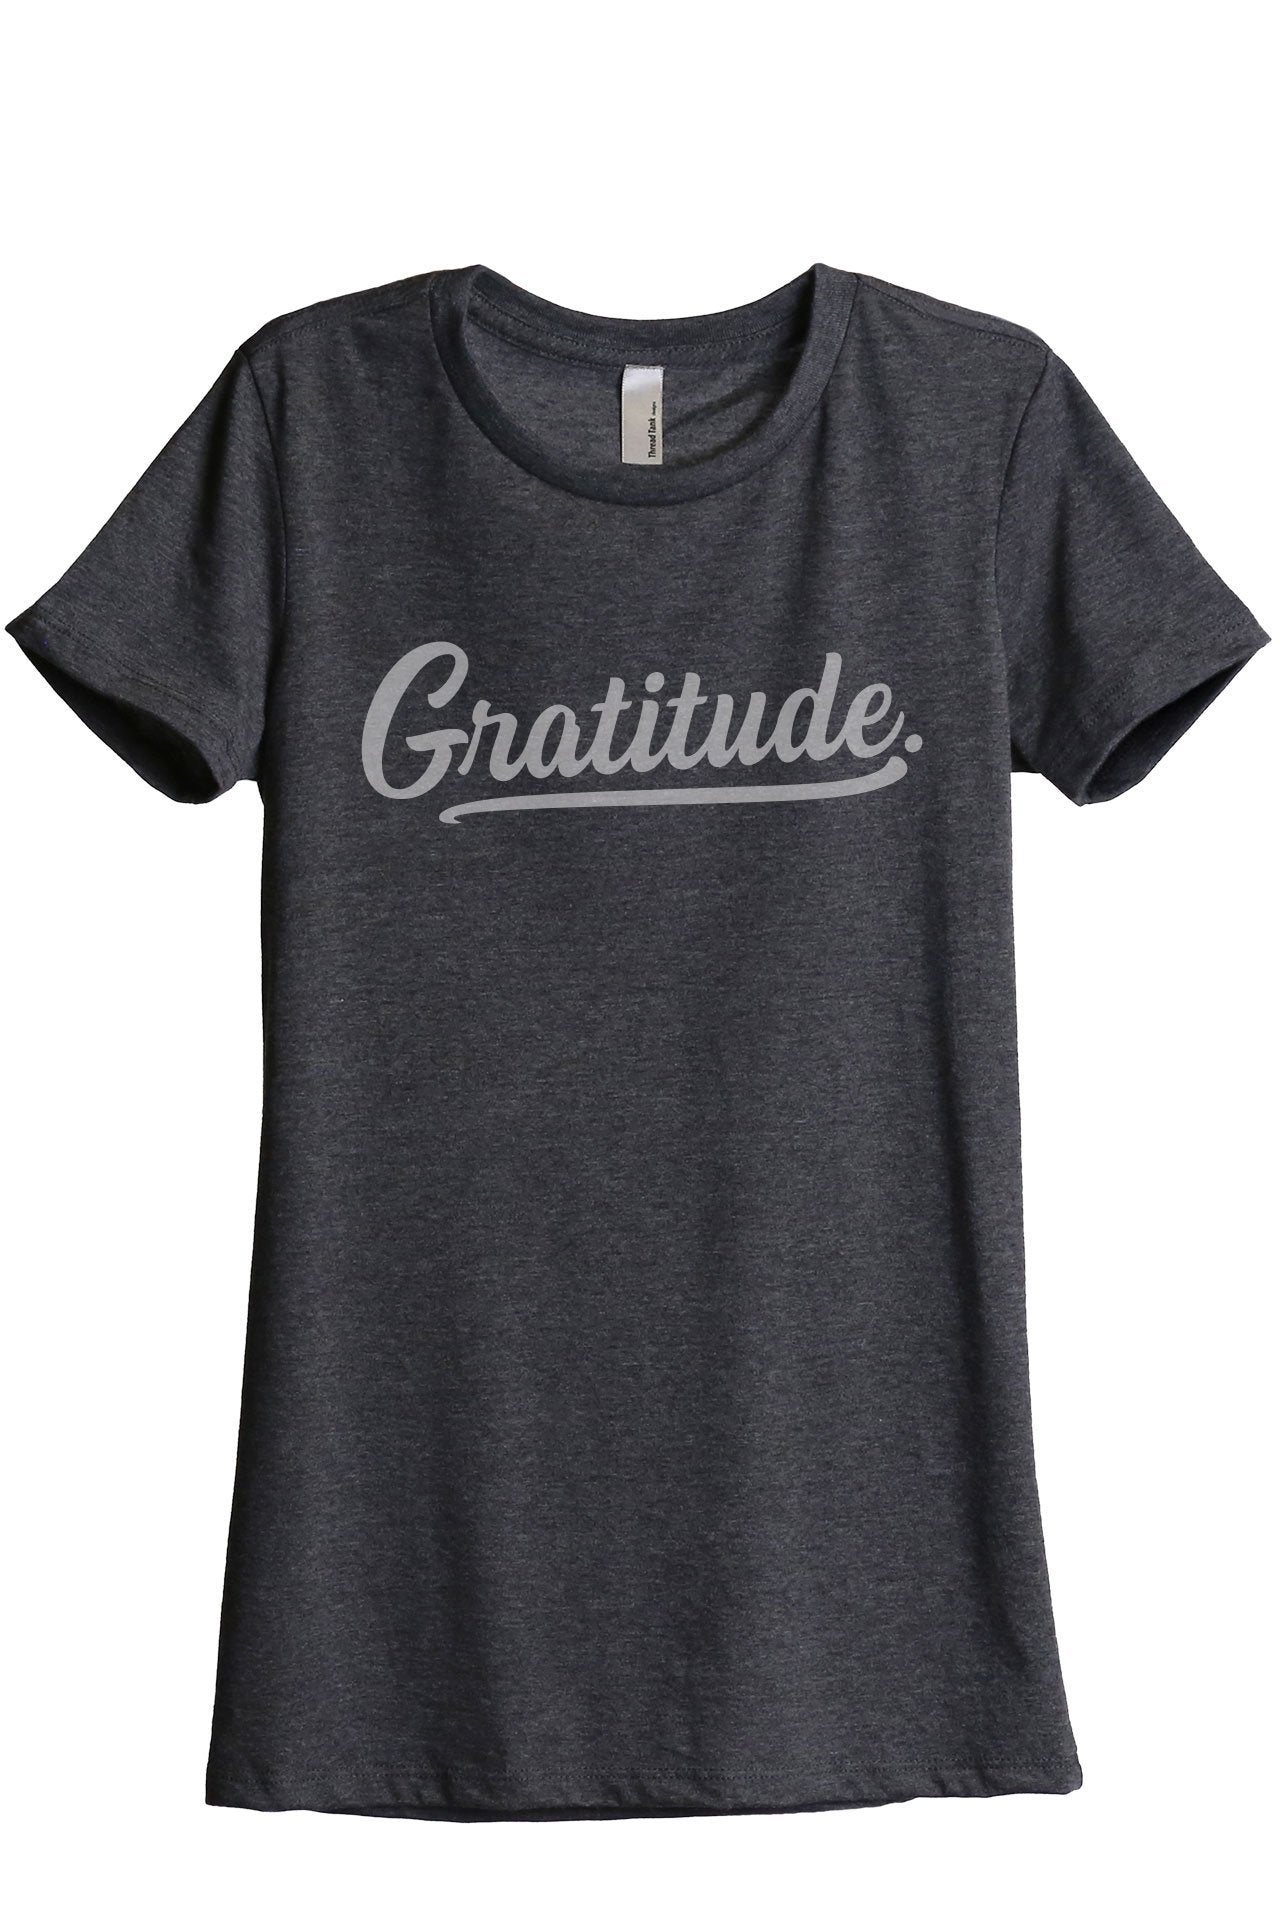 Gratitude Women's Relaxed Crewneck T-Shirt Top Tee Charcoal Grey